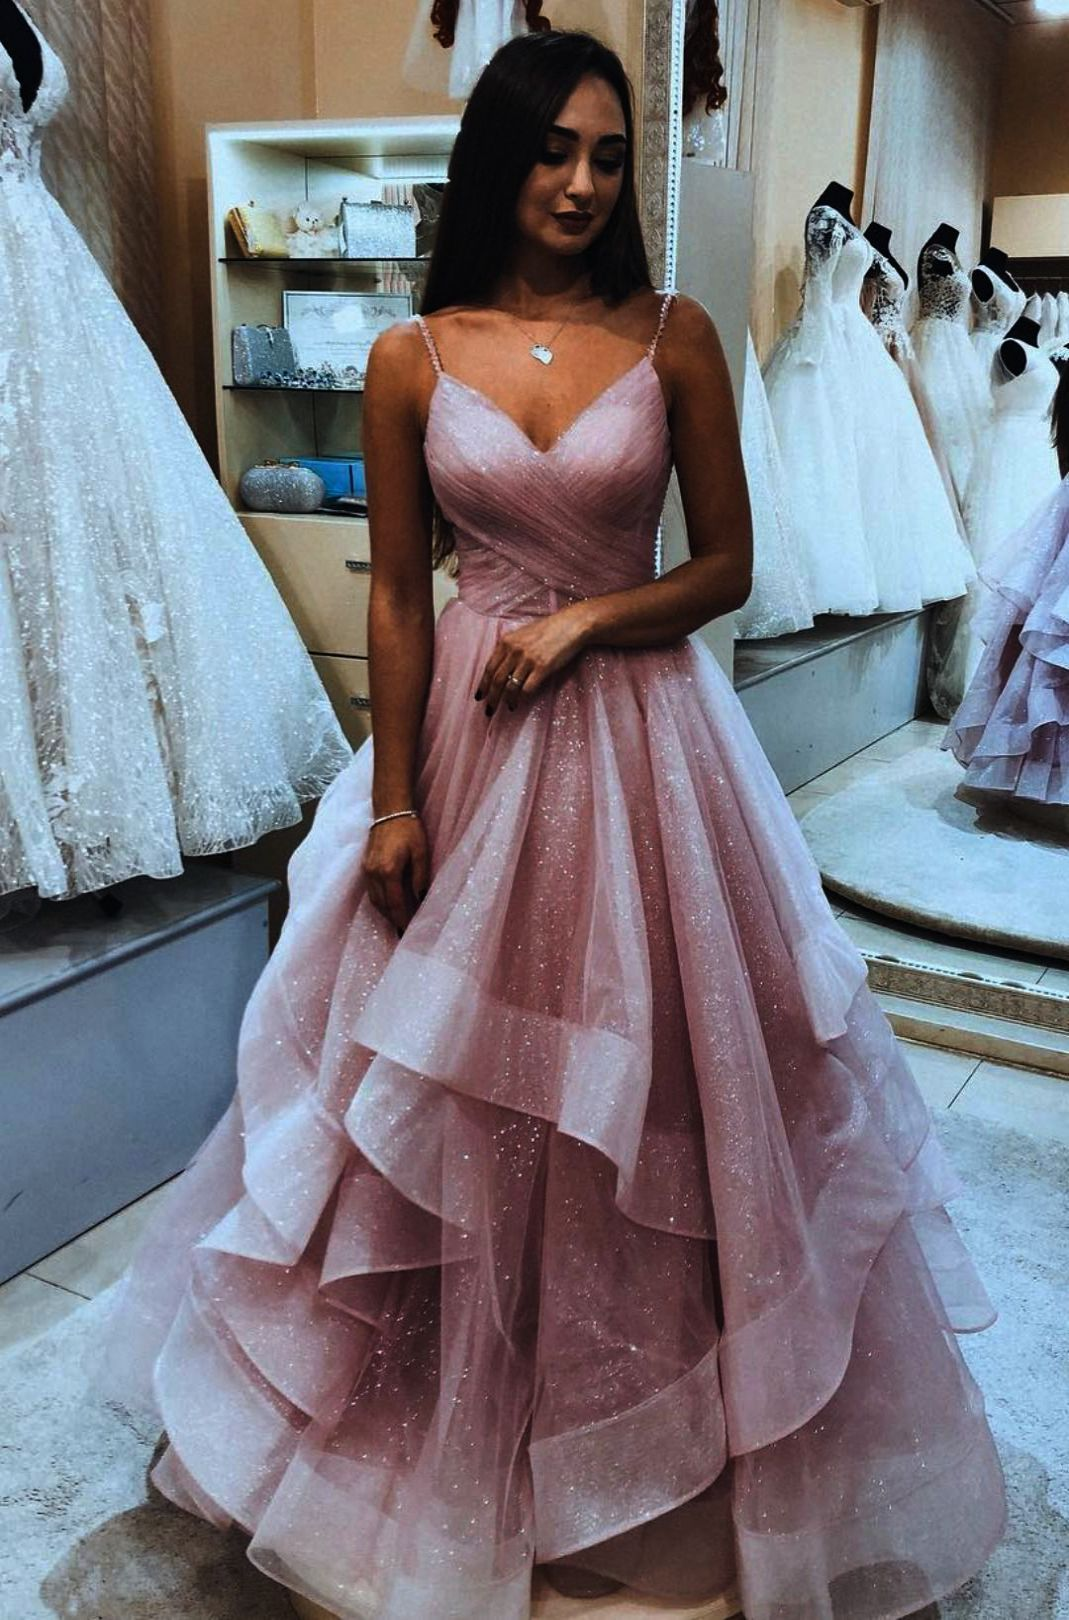 Formal Dresses Plus Size Online Before Prom Dresses Knoxville Tn Dillards Prom Dress Stores Newmarke Cute Prom Dresses Prom Dresses Long Pink Tulle Prom Dress [ 1620 x 1069 Pixel ]